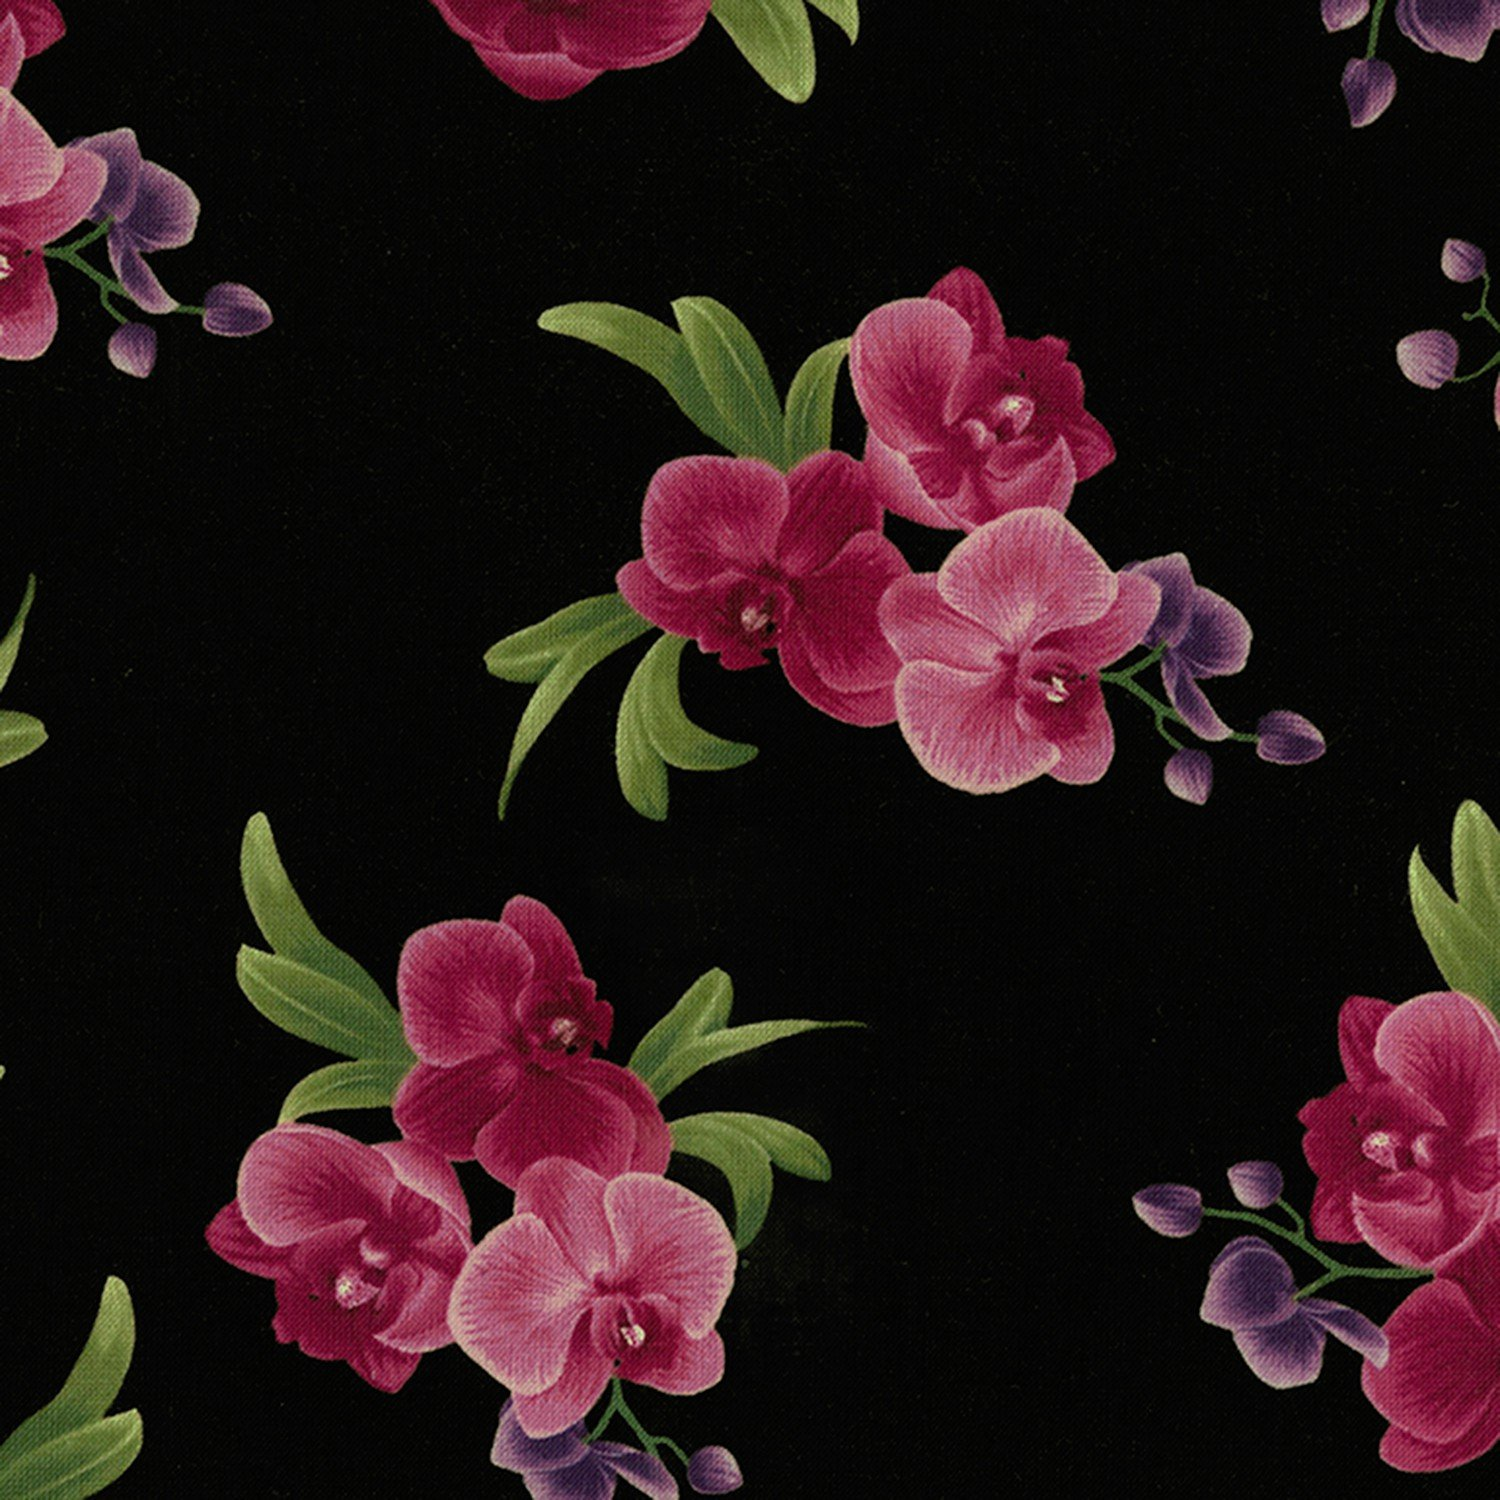 Wild Orchid - Black Orchid - Lrg Floral